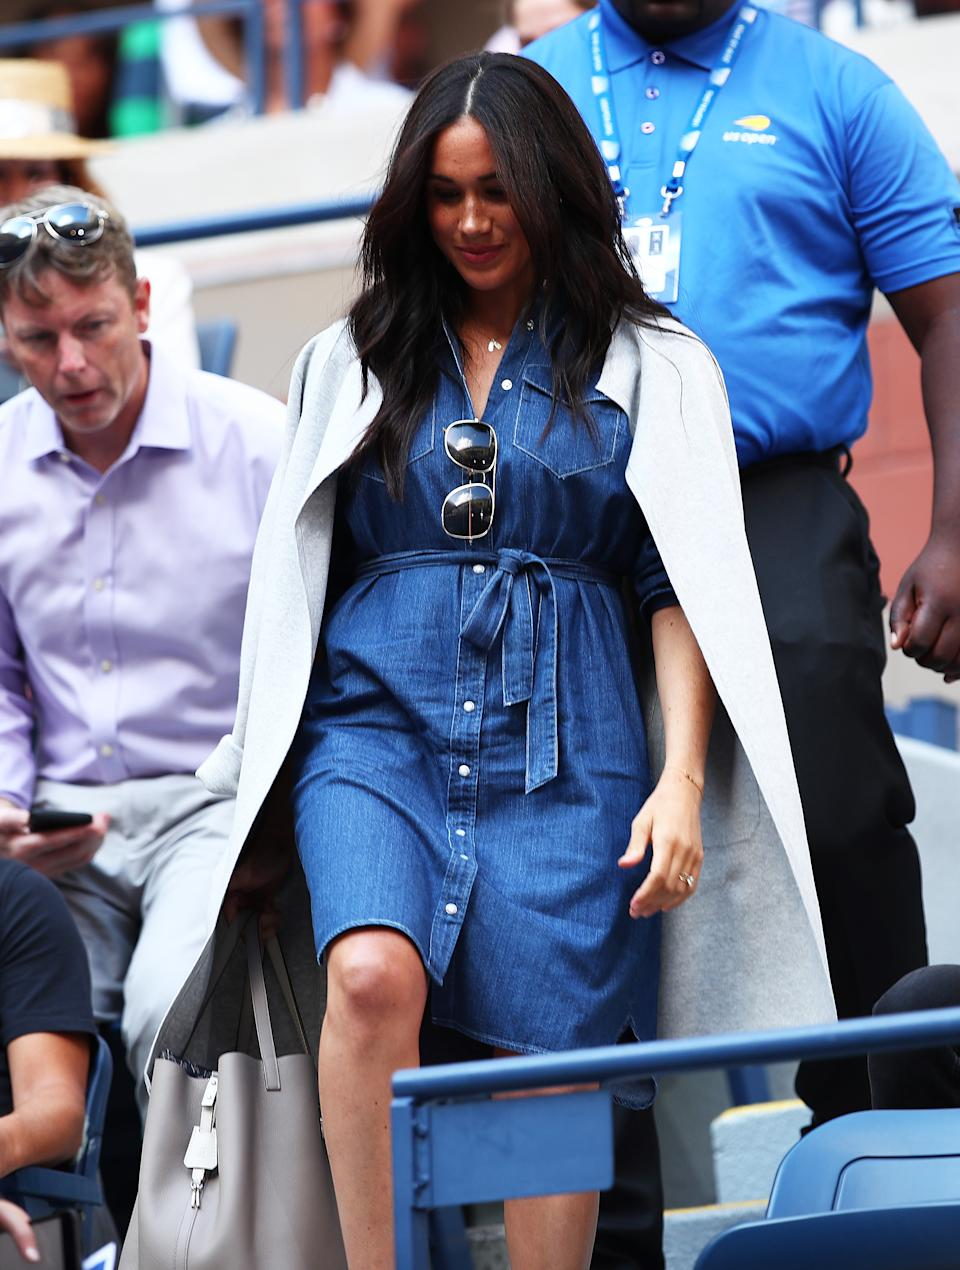 The Duchess of Sussex wowed in a £96 denim dress to cheer on the American tennis star